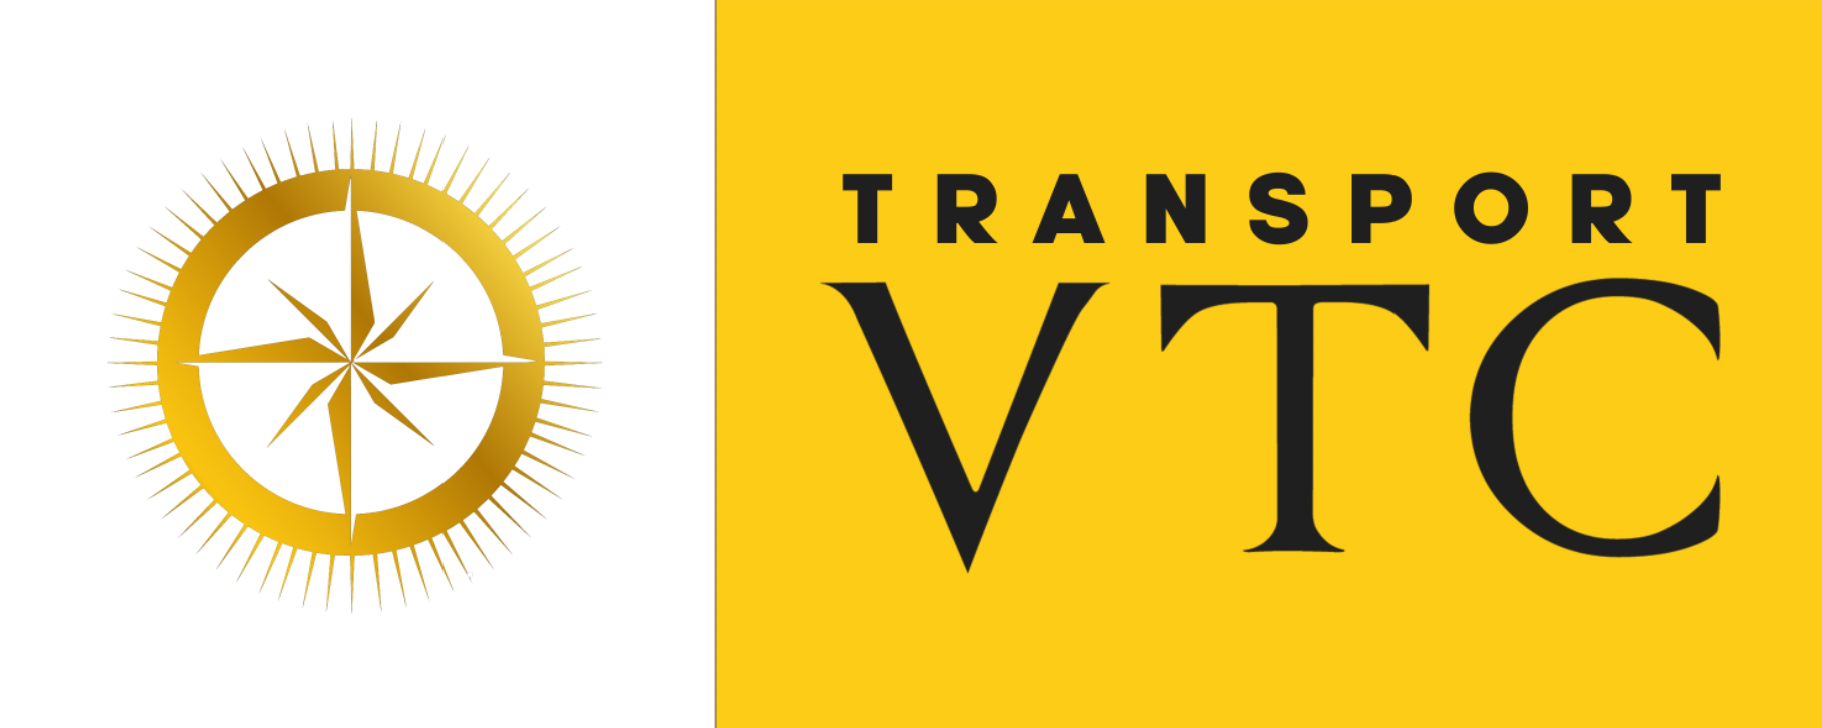 VTC TRANSPORT